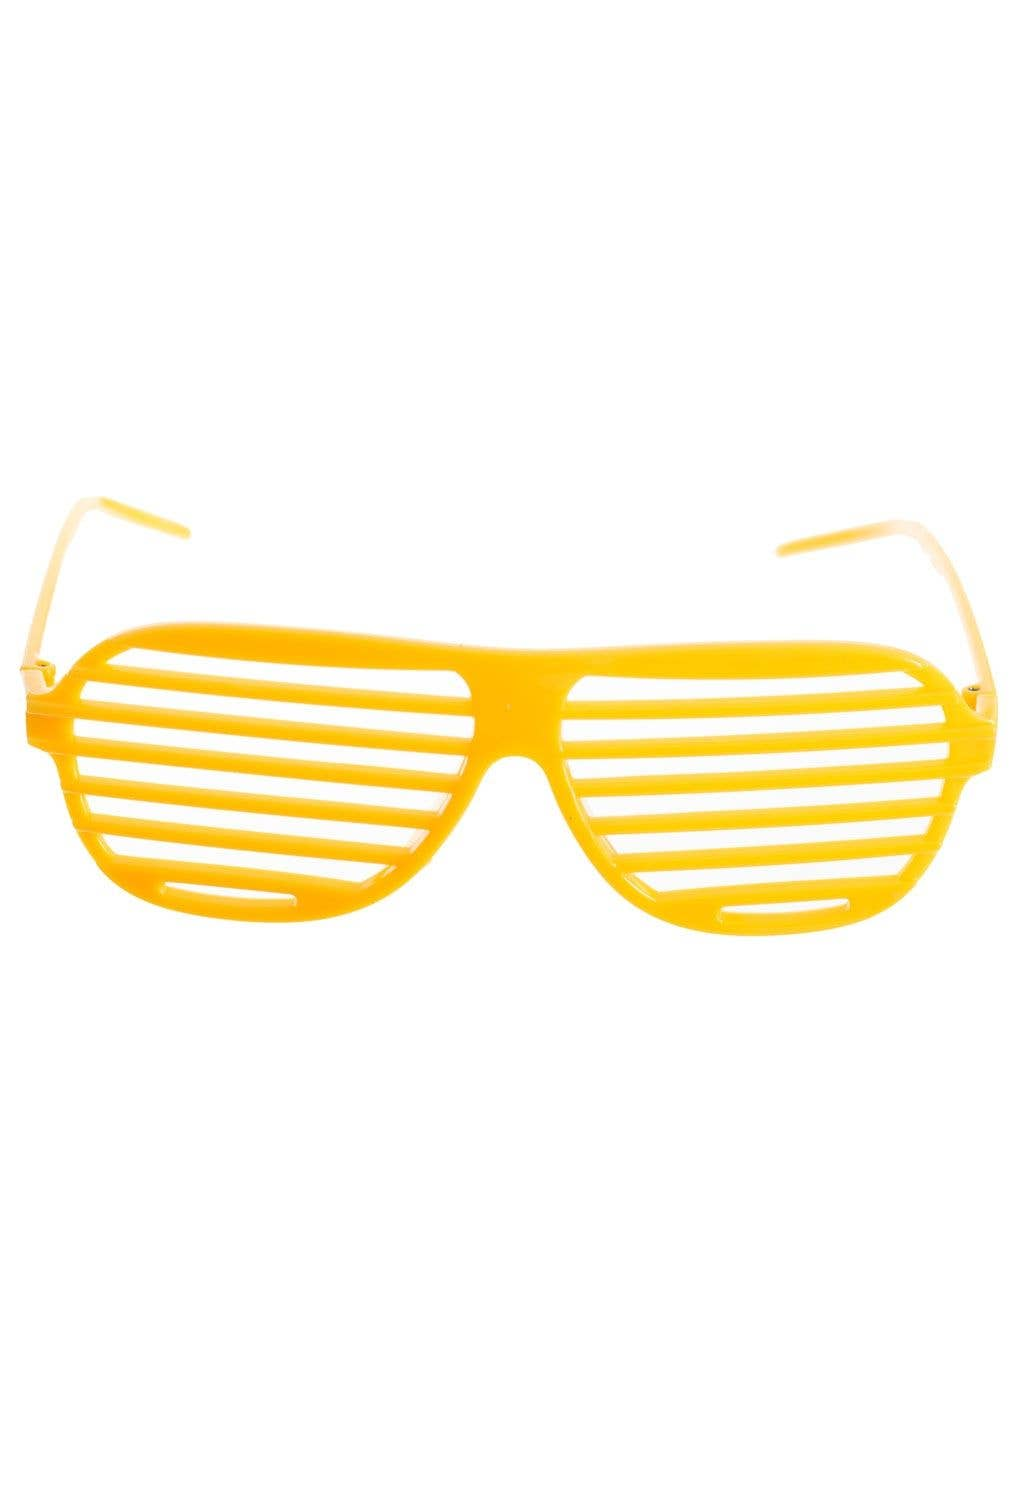 b2f44ea157a4 80's Yellow Shutter Shades | Yellow Shutter Novelty Glasses